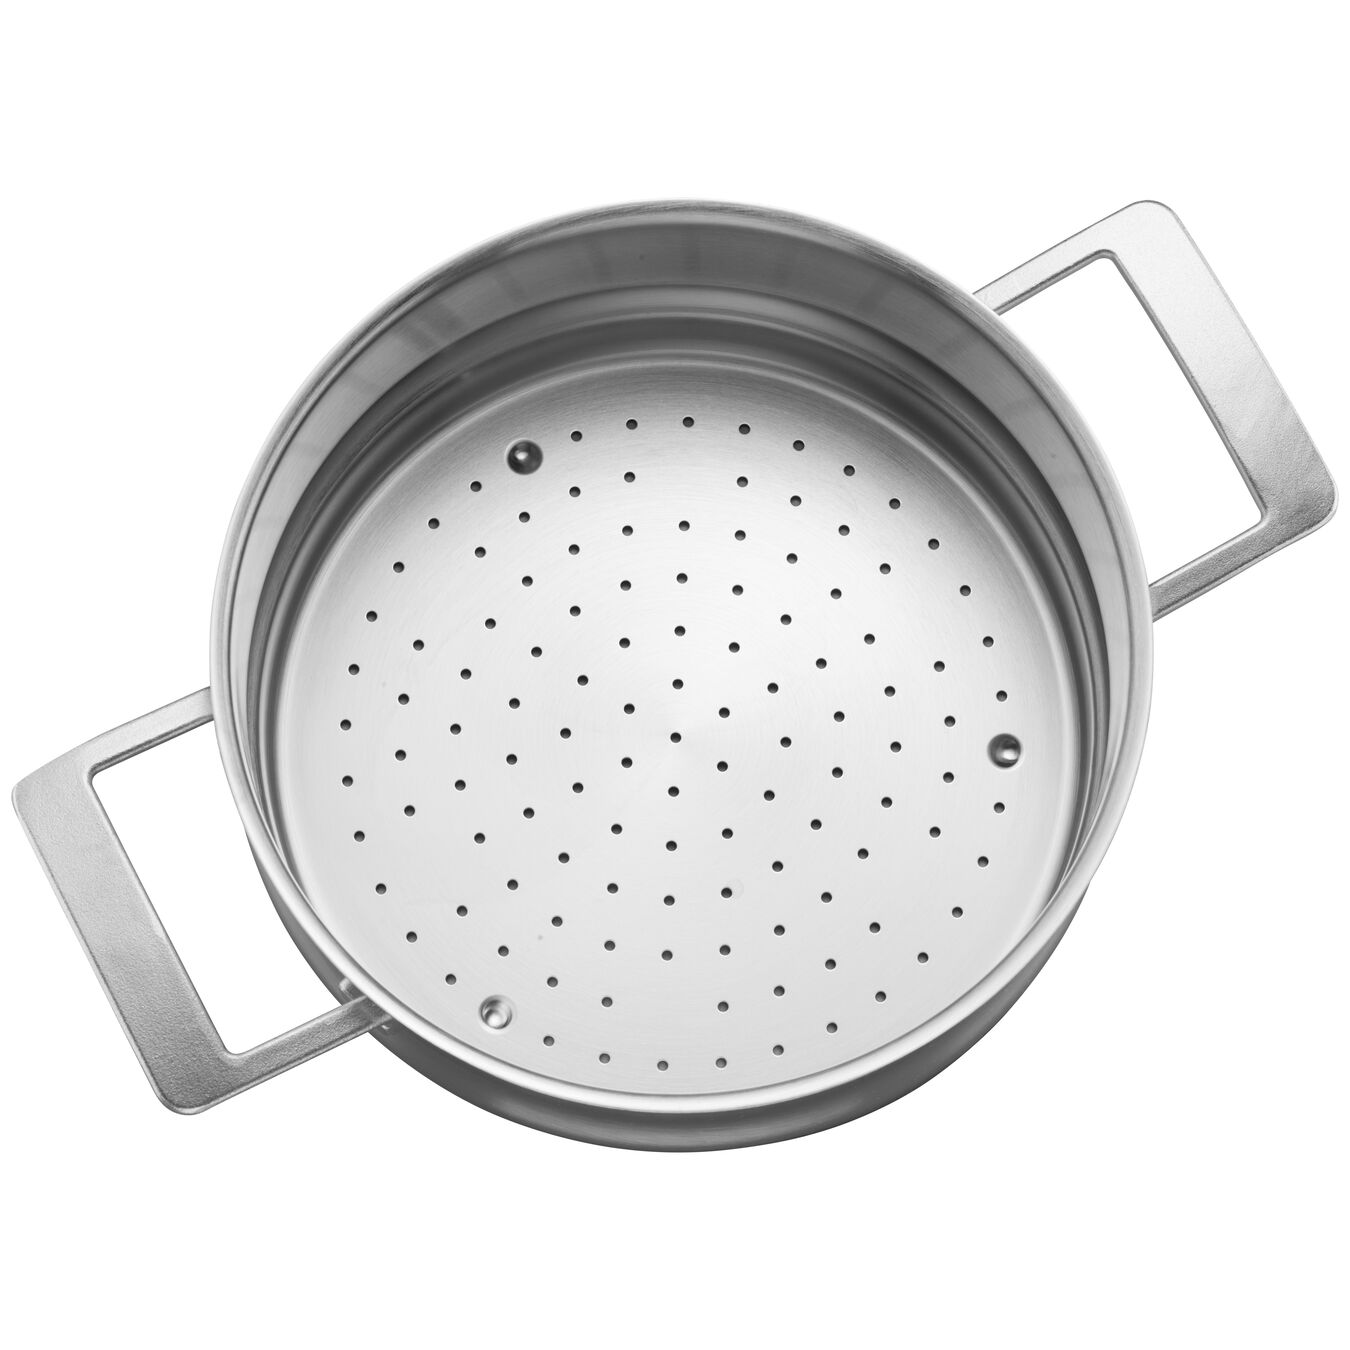 5.5-qt Stainless Steel Steamer Insert (Fits 8-qt Stock Pot & 5.5-qt Dutch Oven),,large 2